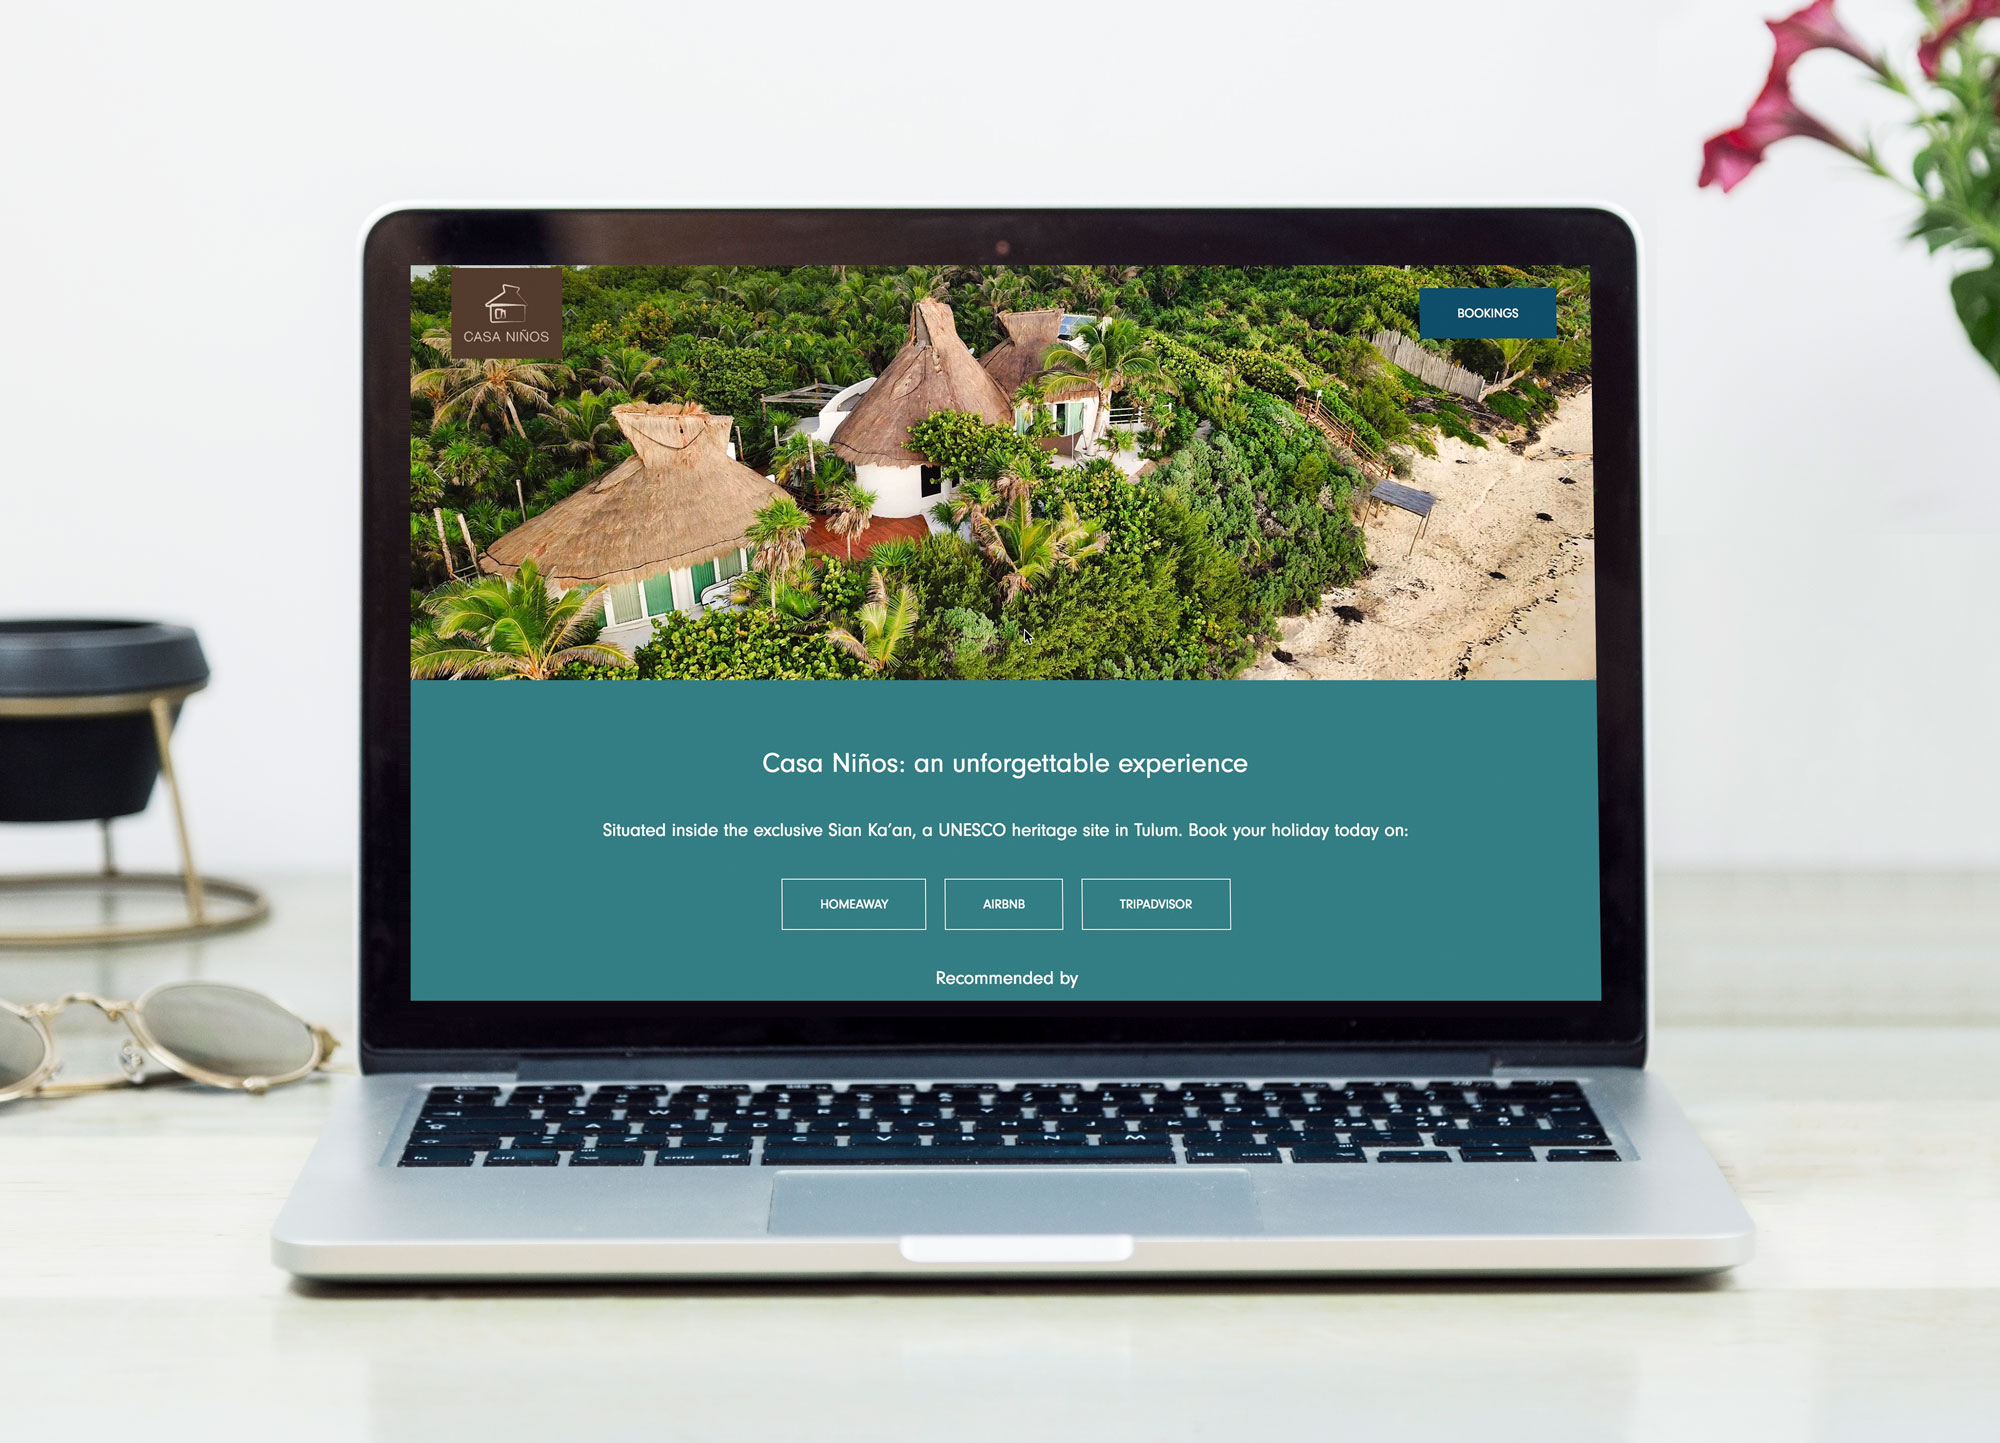 casaninos-website-desktop-02